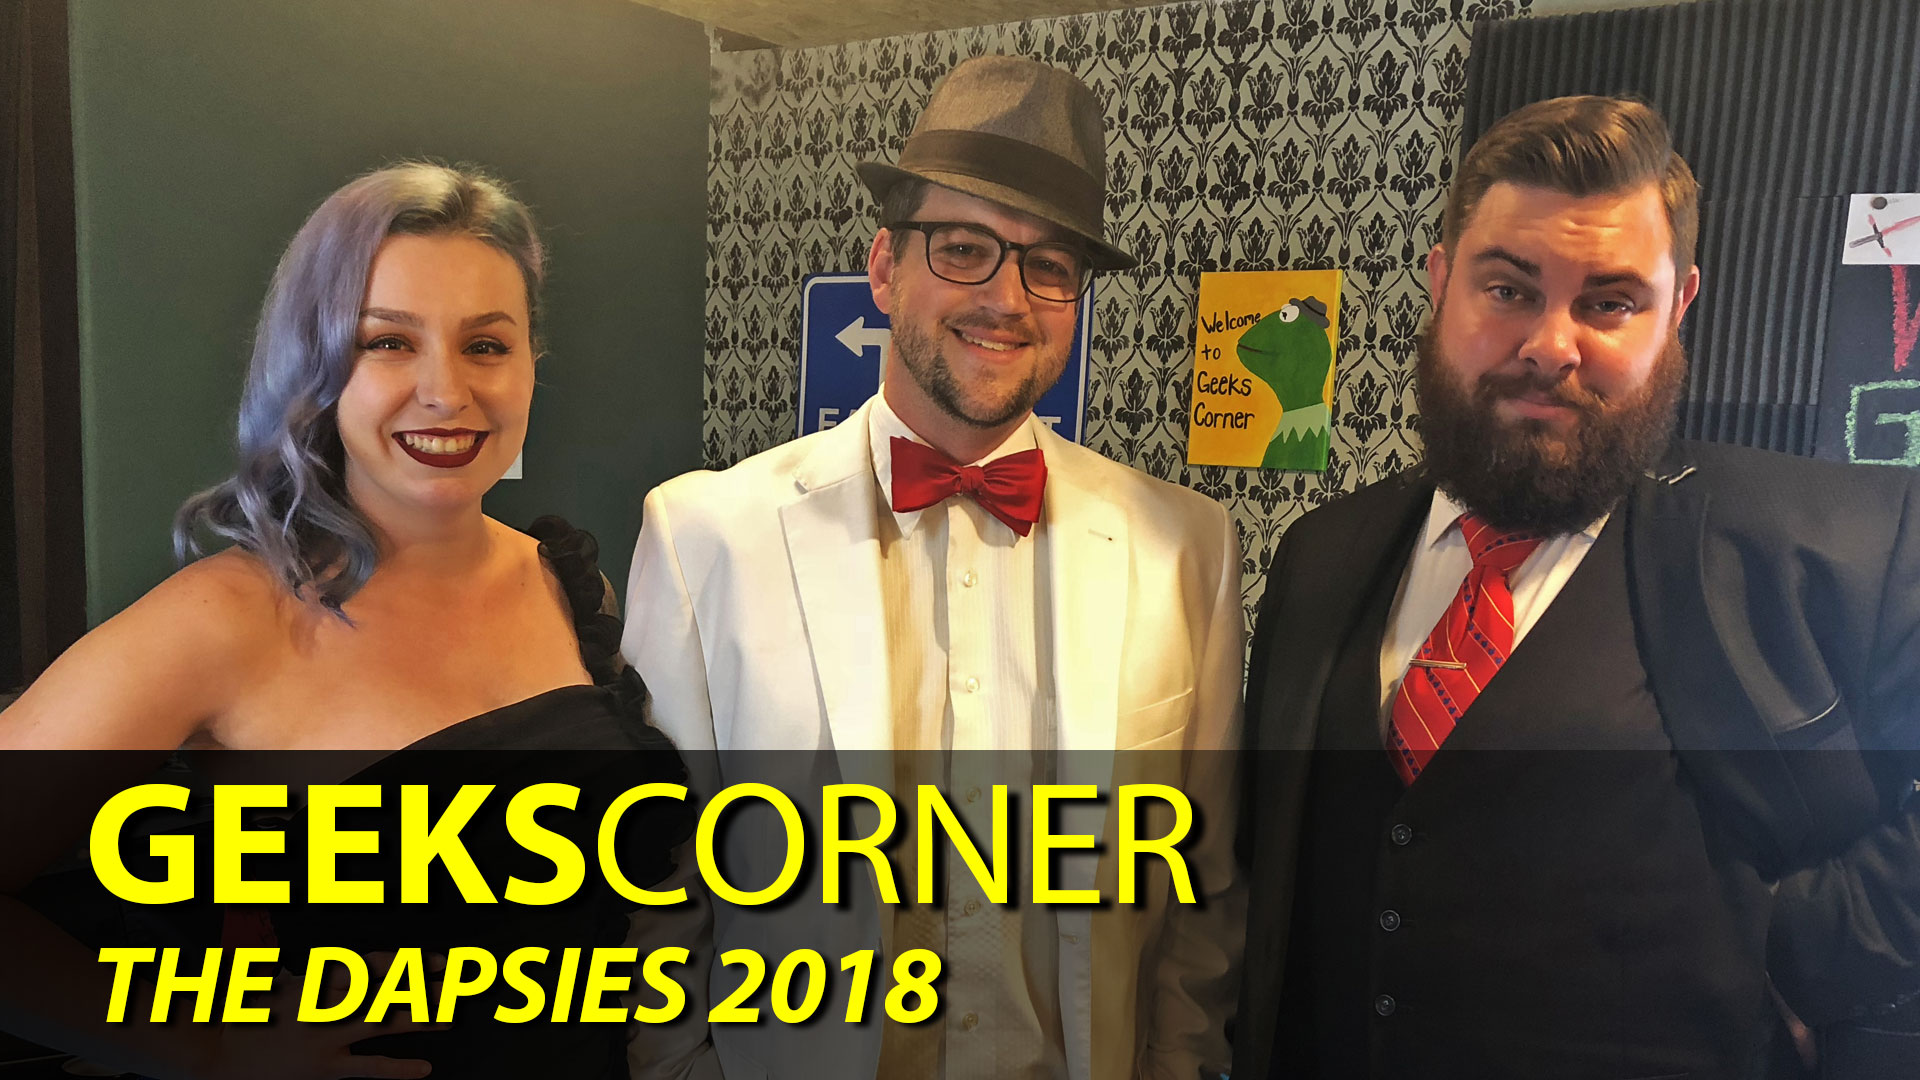 THE DAPSIES 2018 - GEEKS CORNER - Episode 822